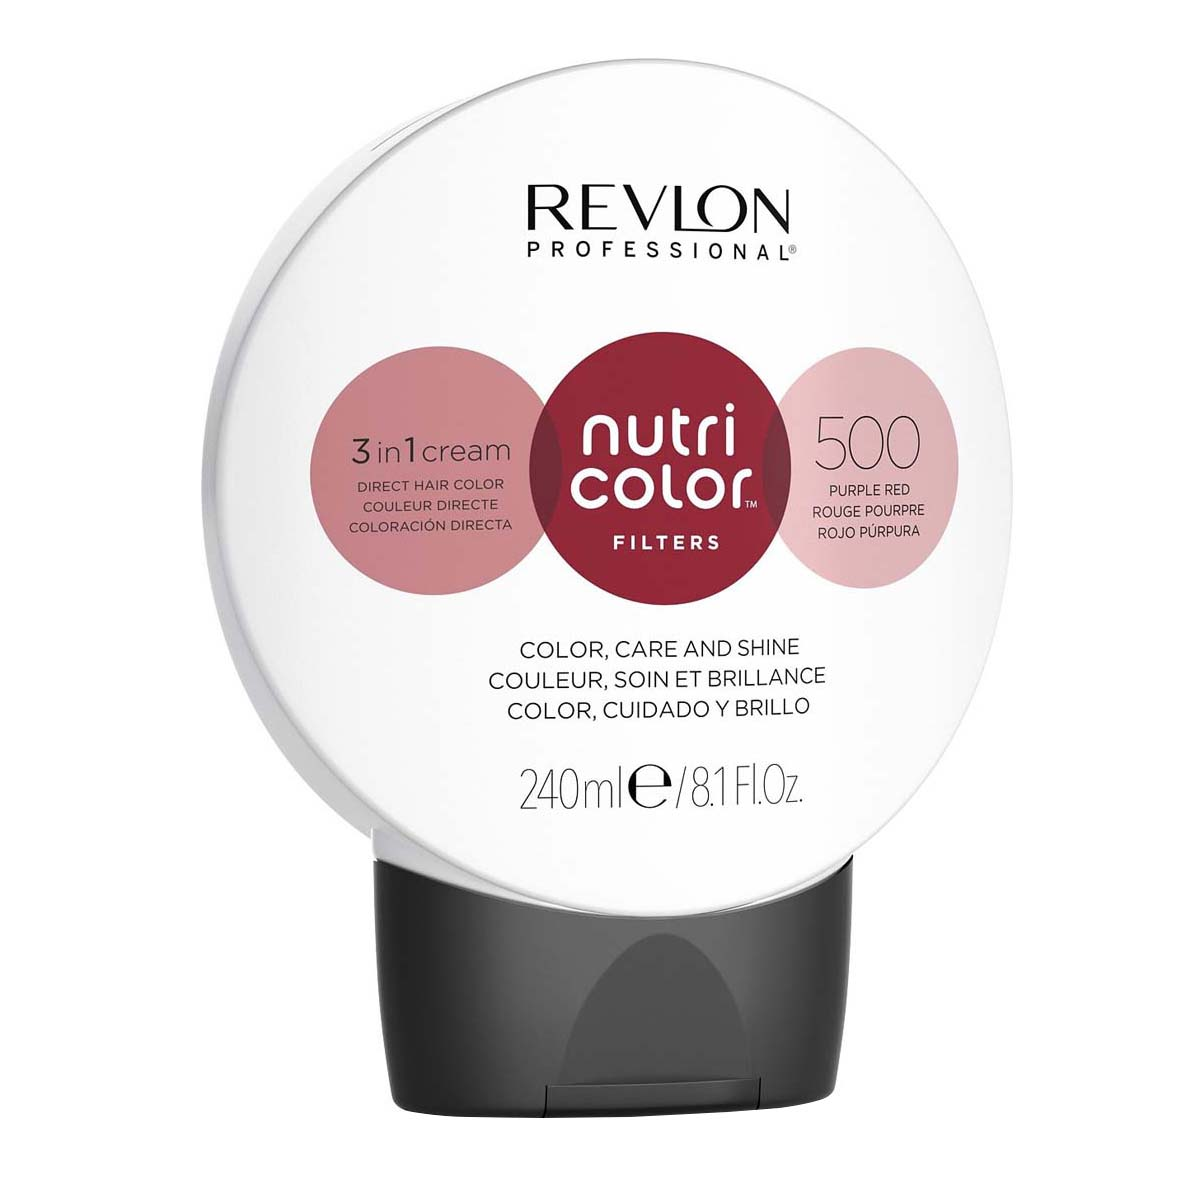 Nutri Color Filters 240ml - 500 Rouge Pourpre